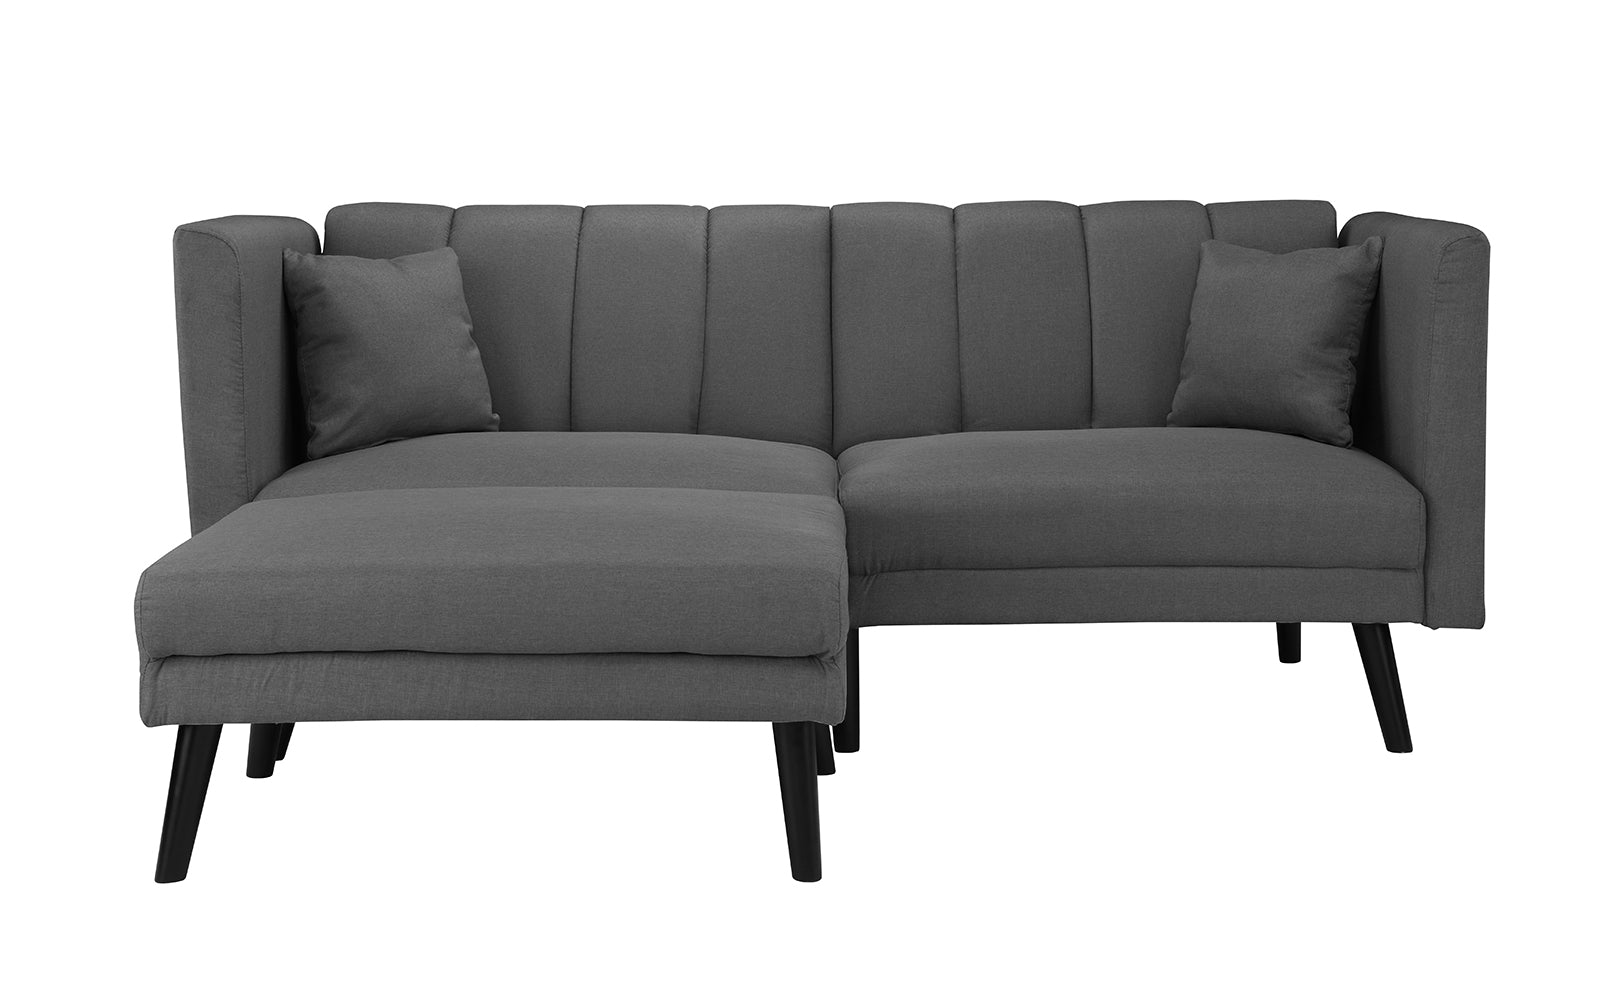 Esme Contemporary Loveseat Sleeper Futon with Chaise Lounge ...